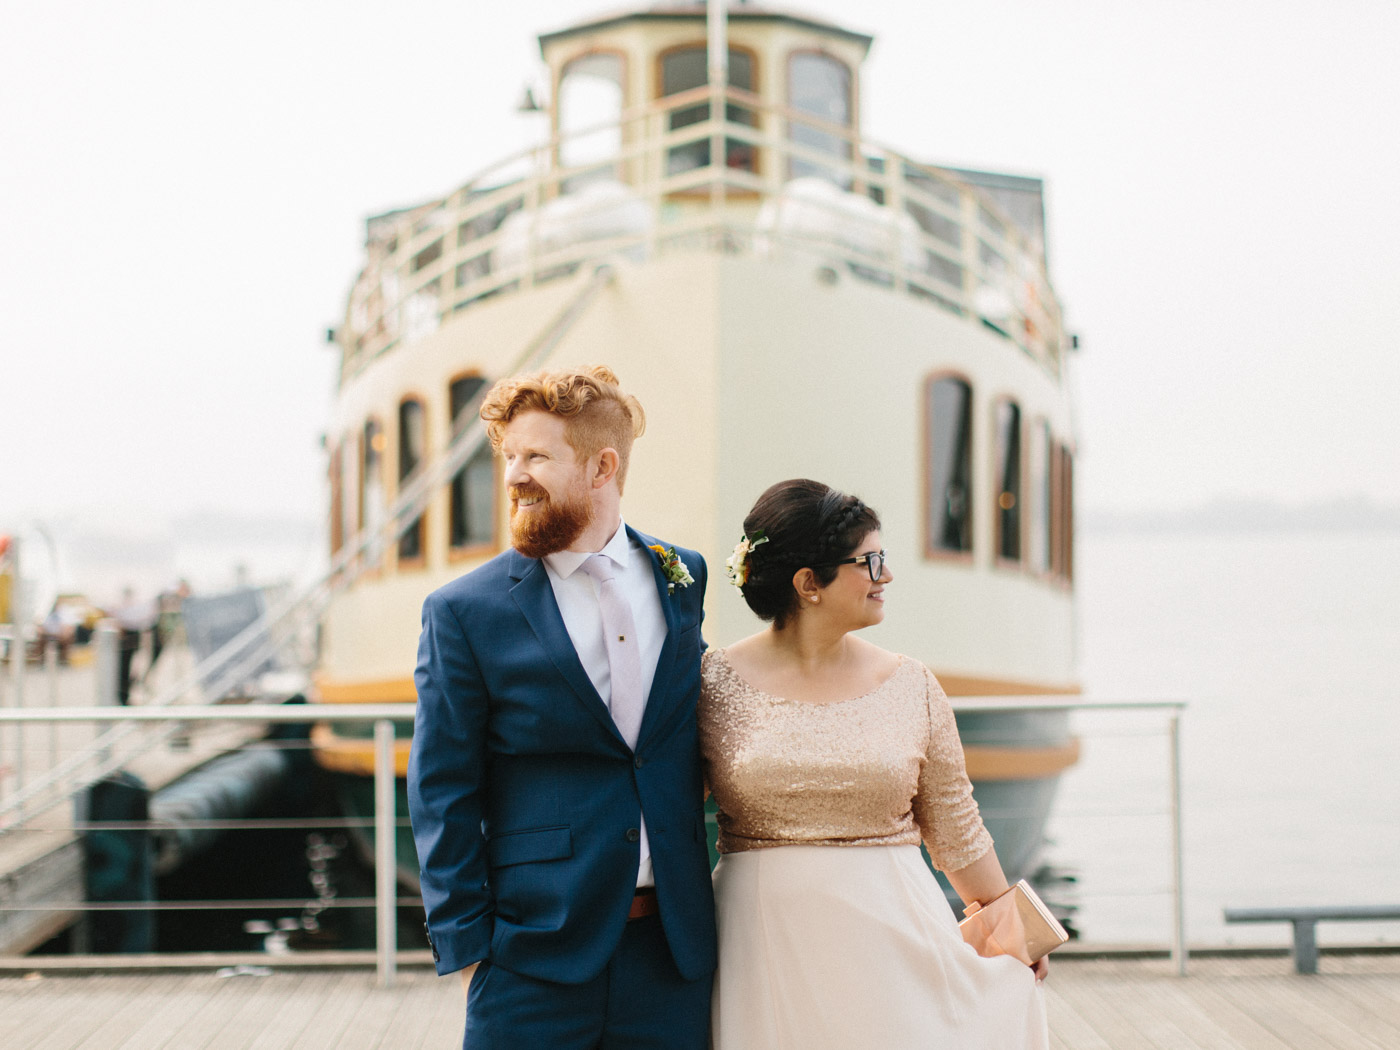 corynn_fowler_photography_toronto_wedding_boat_harbourfont-171.jpg